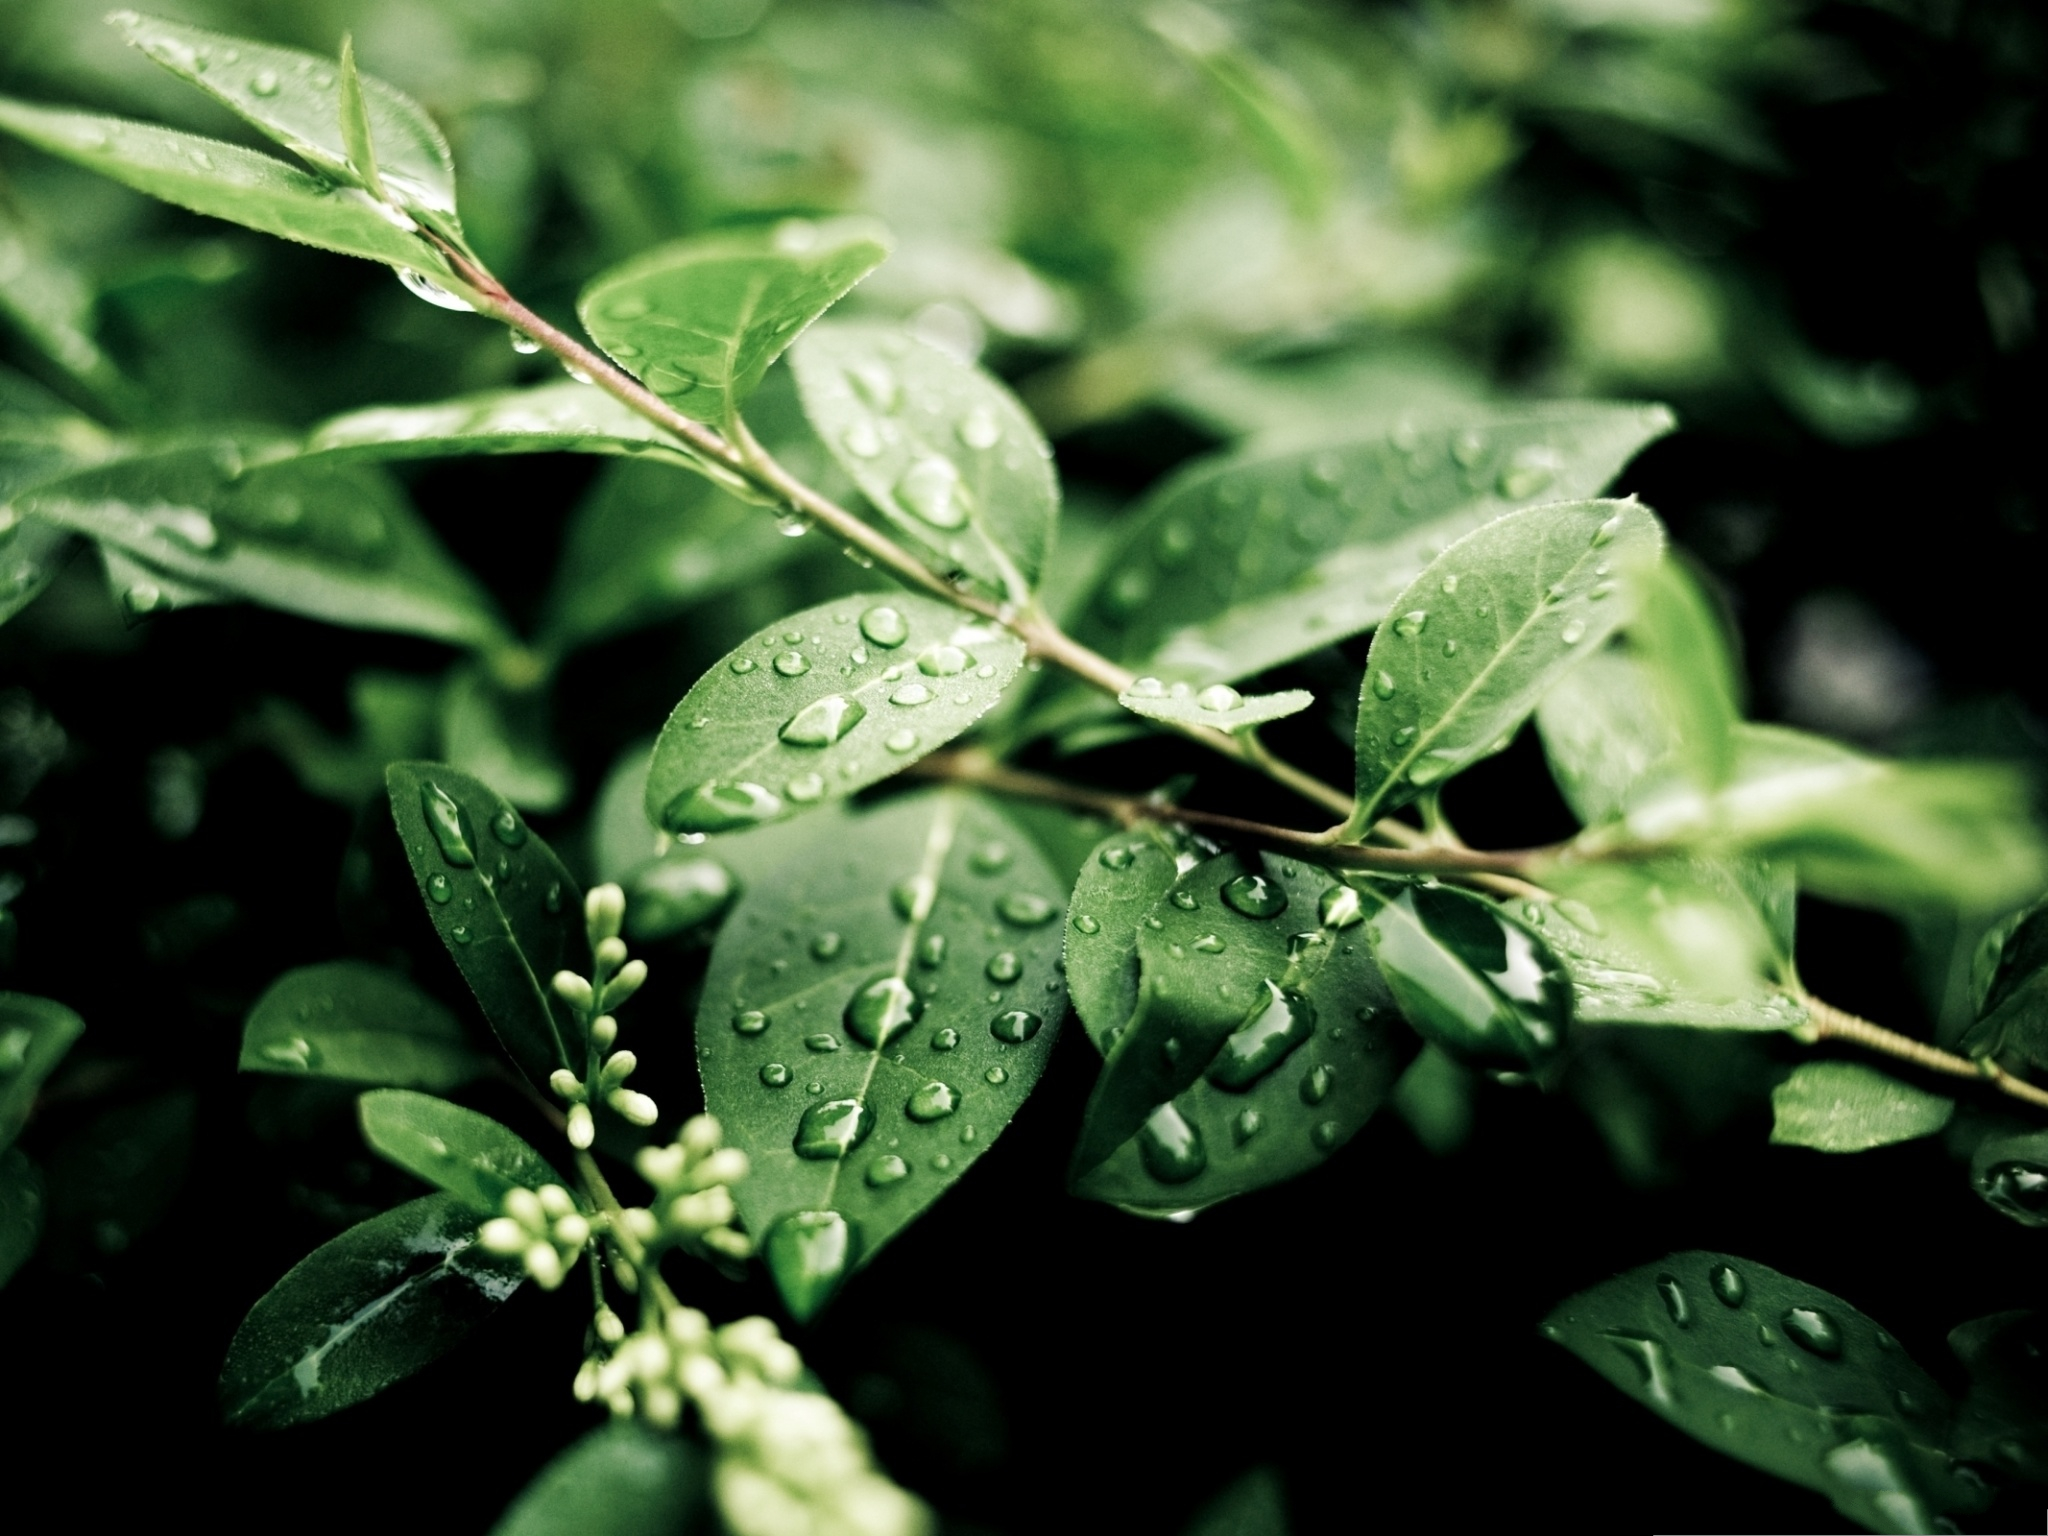 click to free download the wallpaper--Green Plant Images, Rain Drops on Green Leaves, Fresh Morning Scene 2048X1536 free wallpaper download